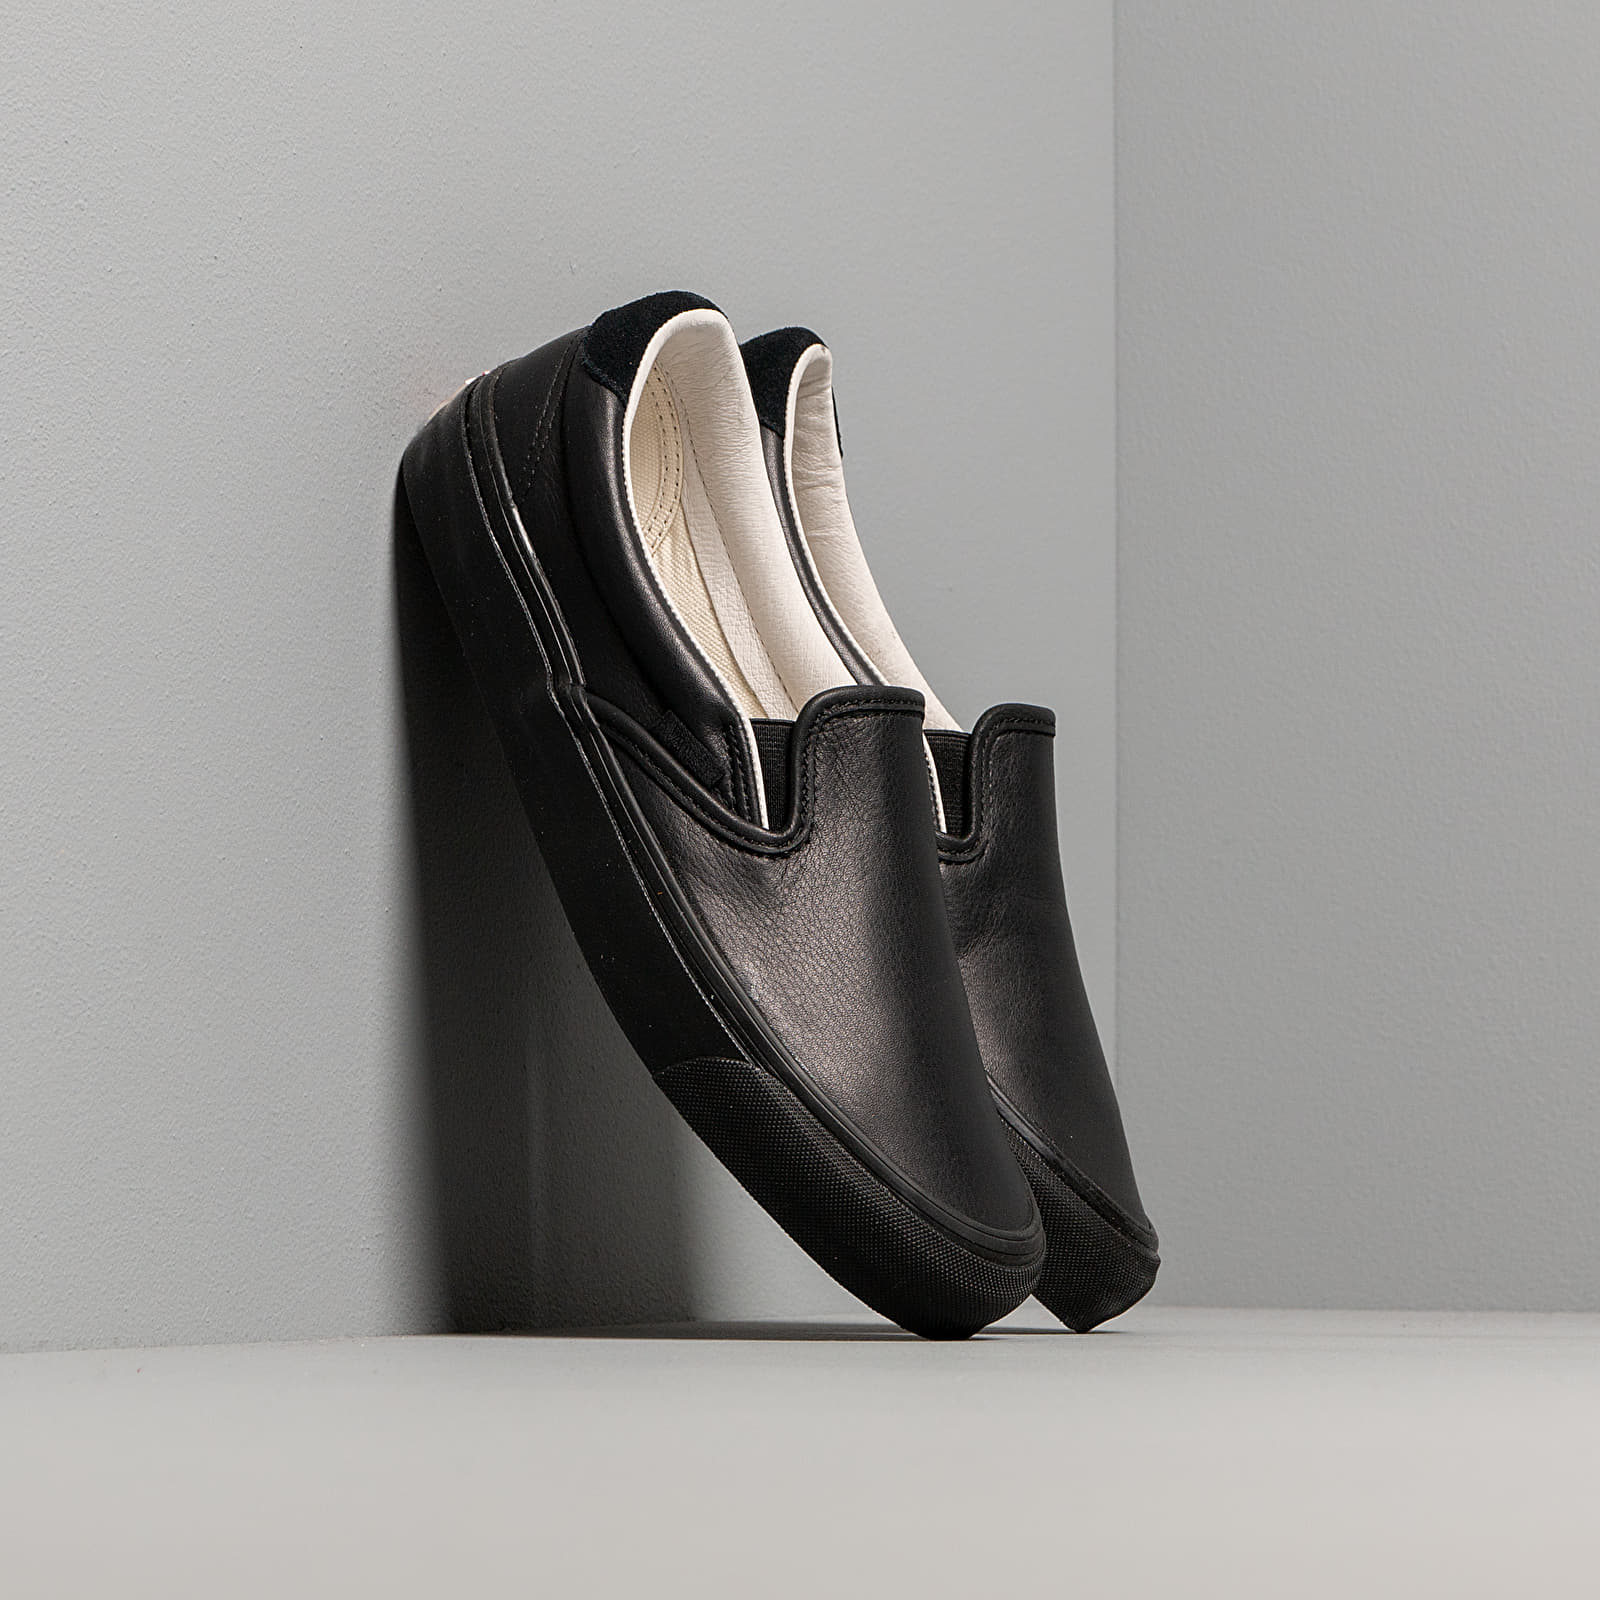 Moški čevlji Vans OG Slip-On 59 LX (Leather/ Suede) Black